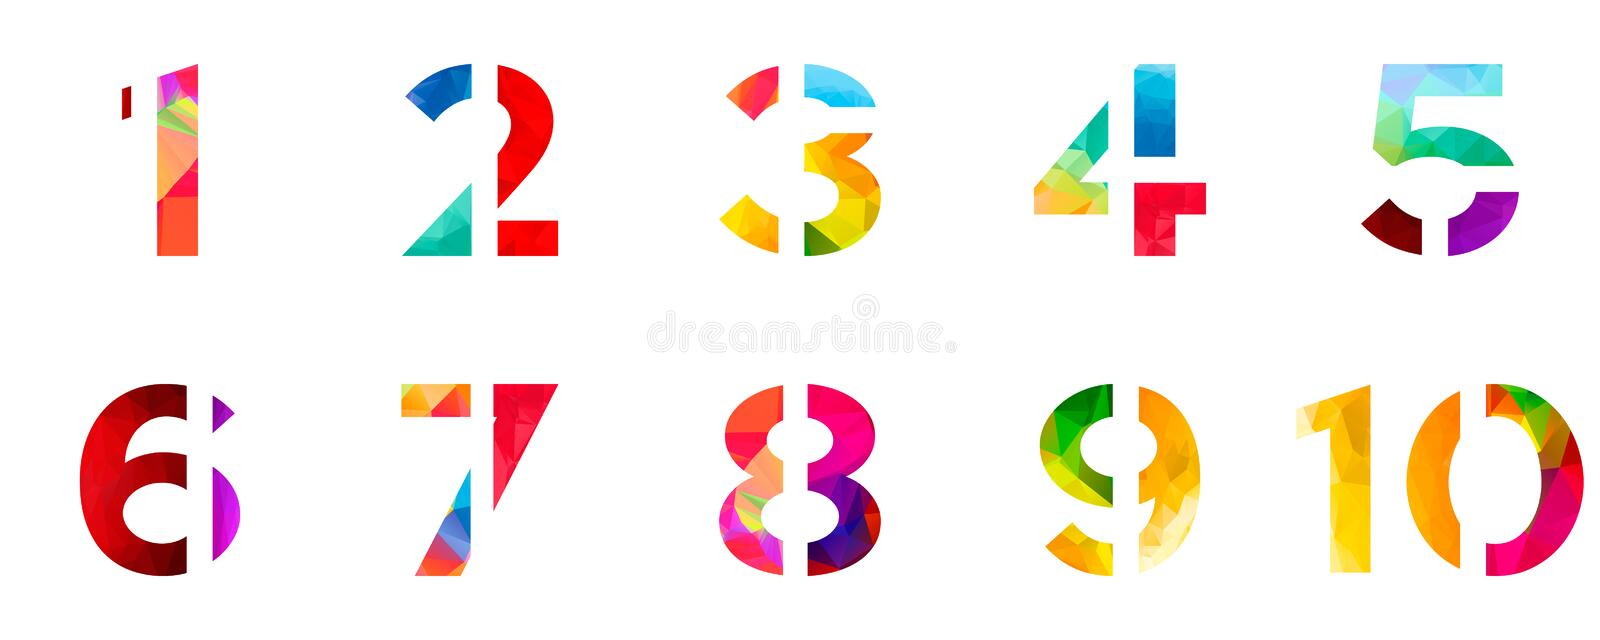 Abstract bright rainbow polygon number alphabet colorful font style. one two three four five six seven eight nine ten zero digits. Illustration. 3d geometric vector illustration